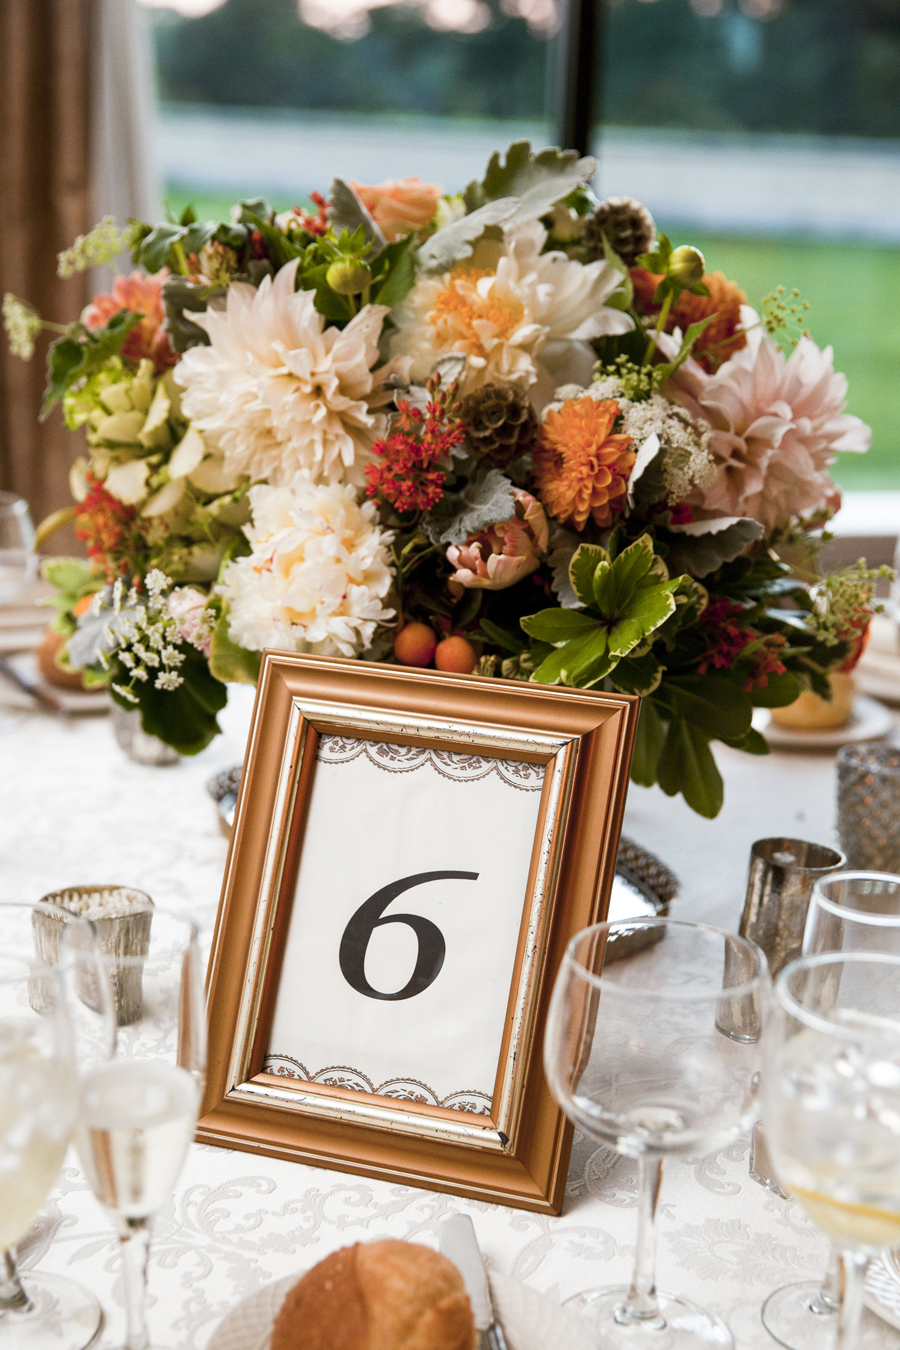 Reception Table Numbers in Frames - Elizabeth Anne Designs: The ...